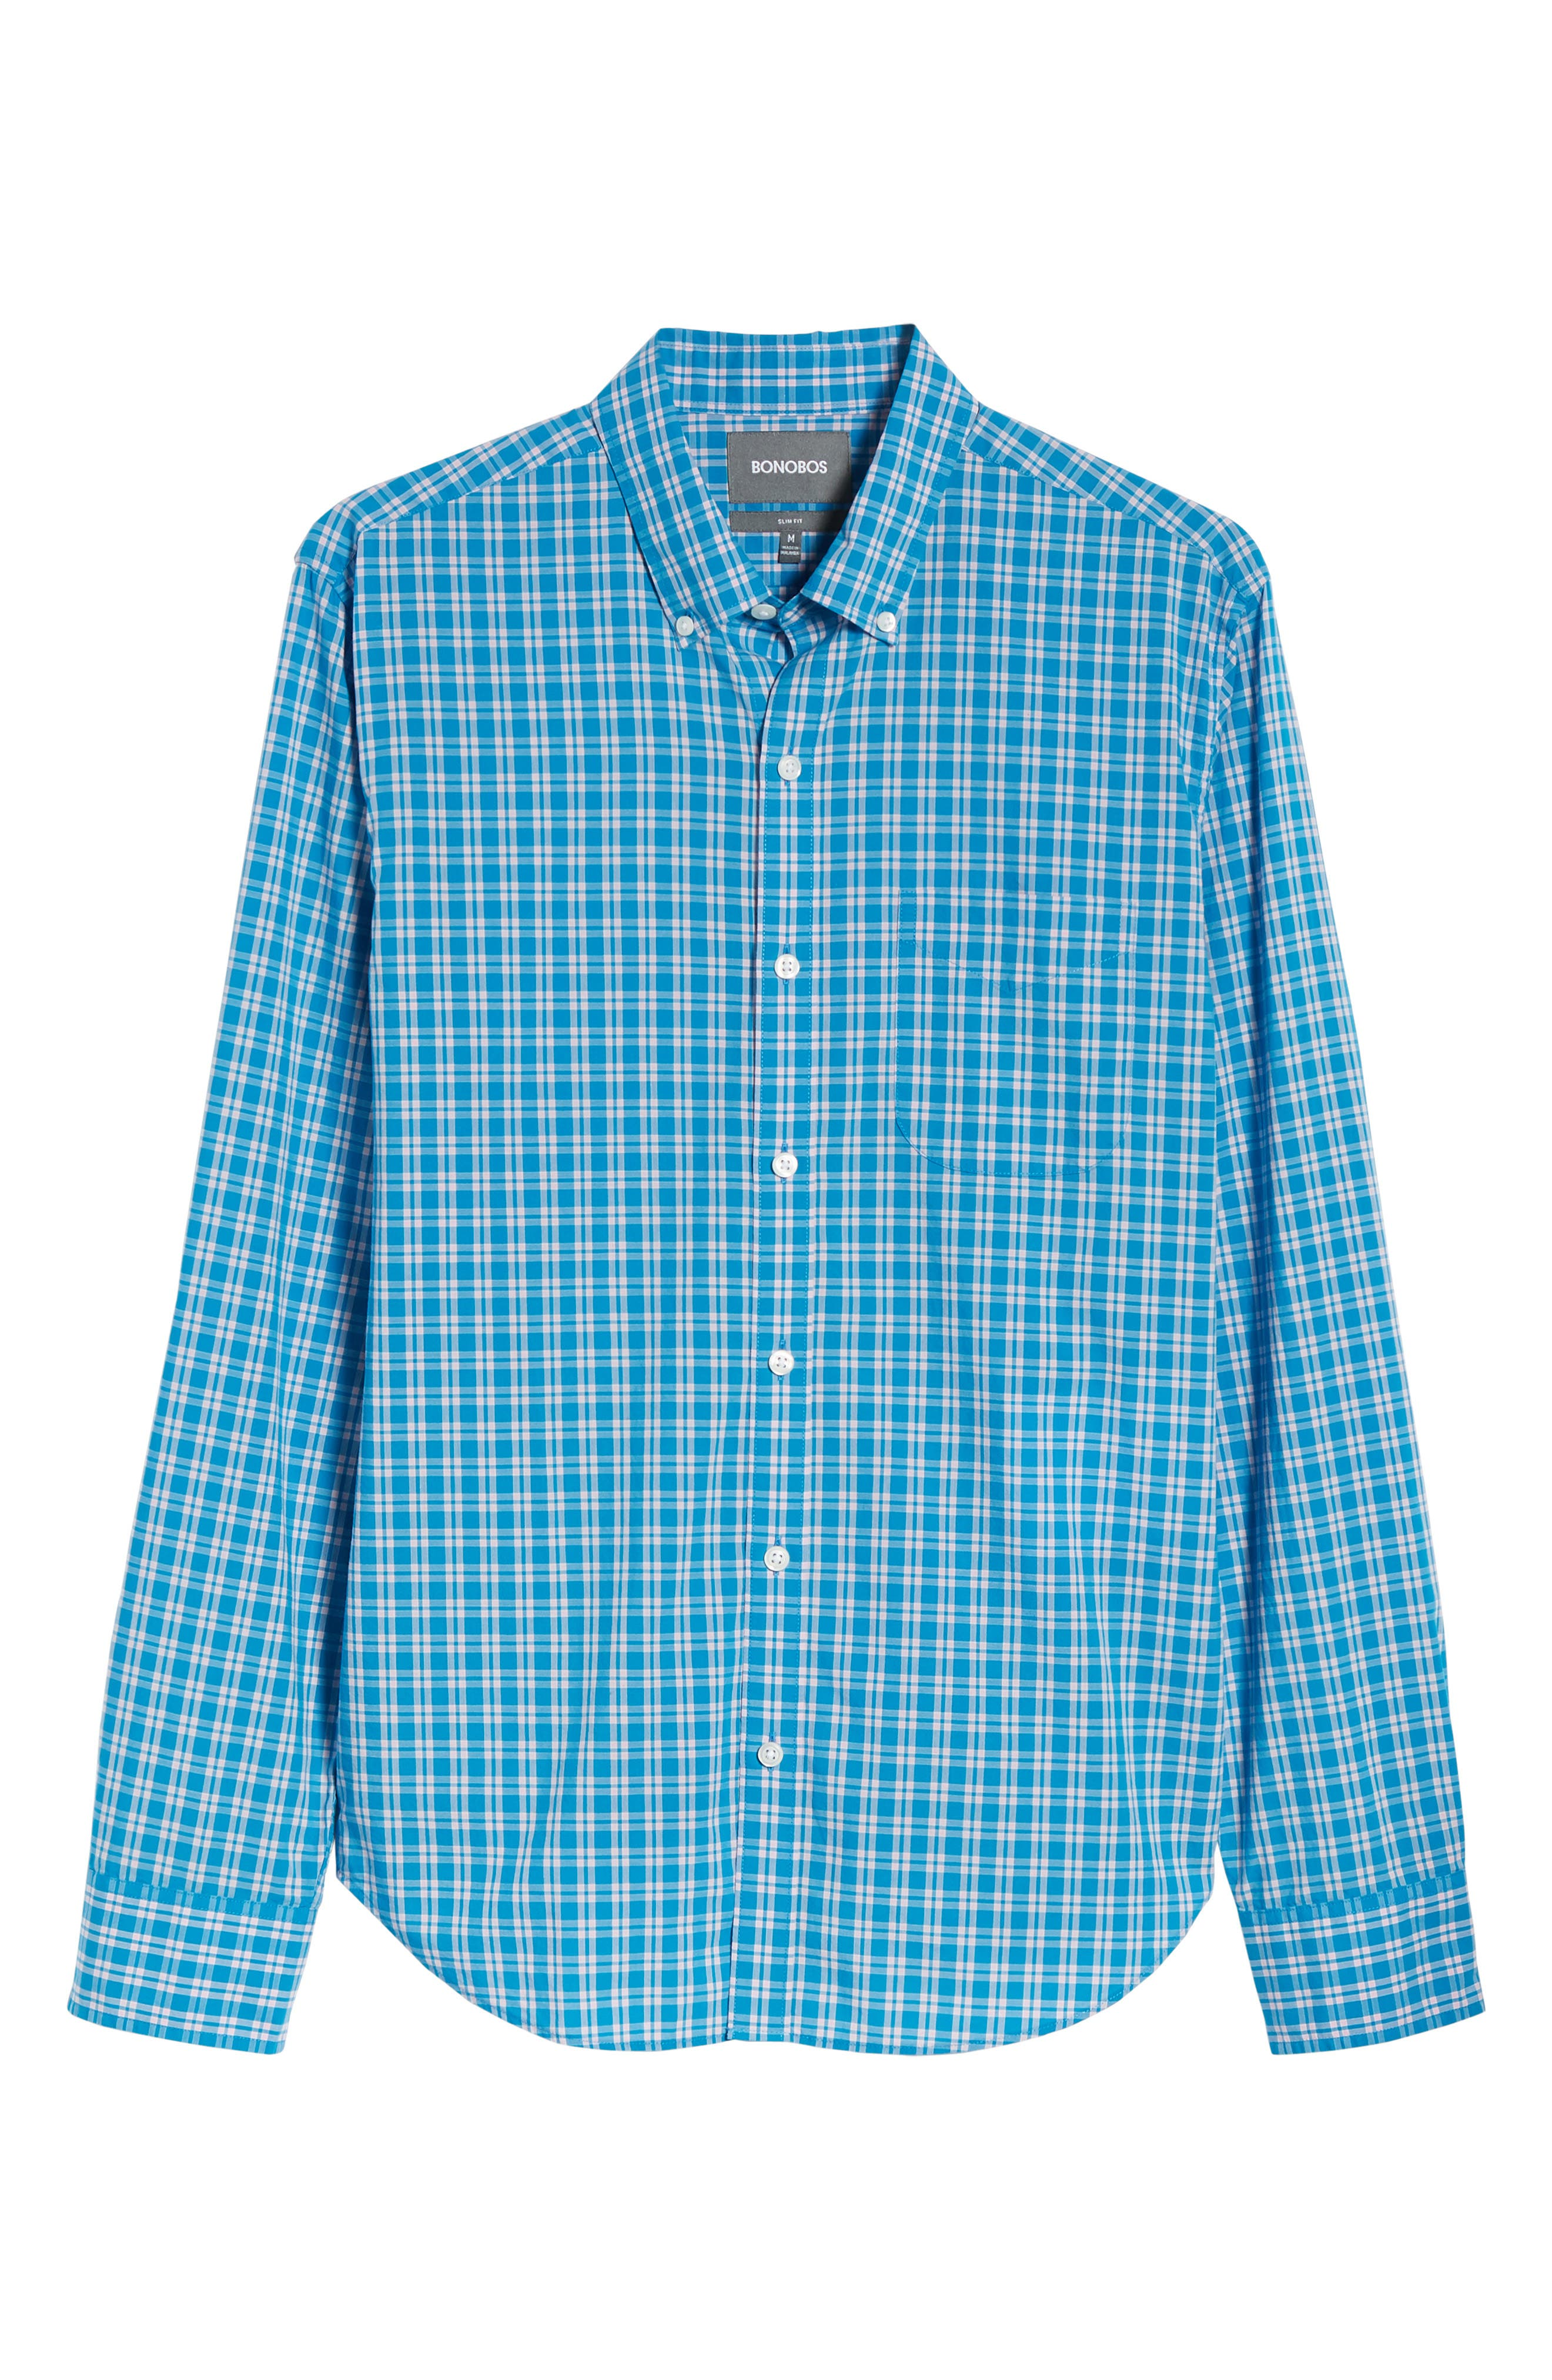 Summerweight Slim Fit Check Sport Shirt,                             Alternate thumbnail 6, color,                             400